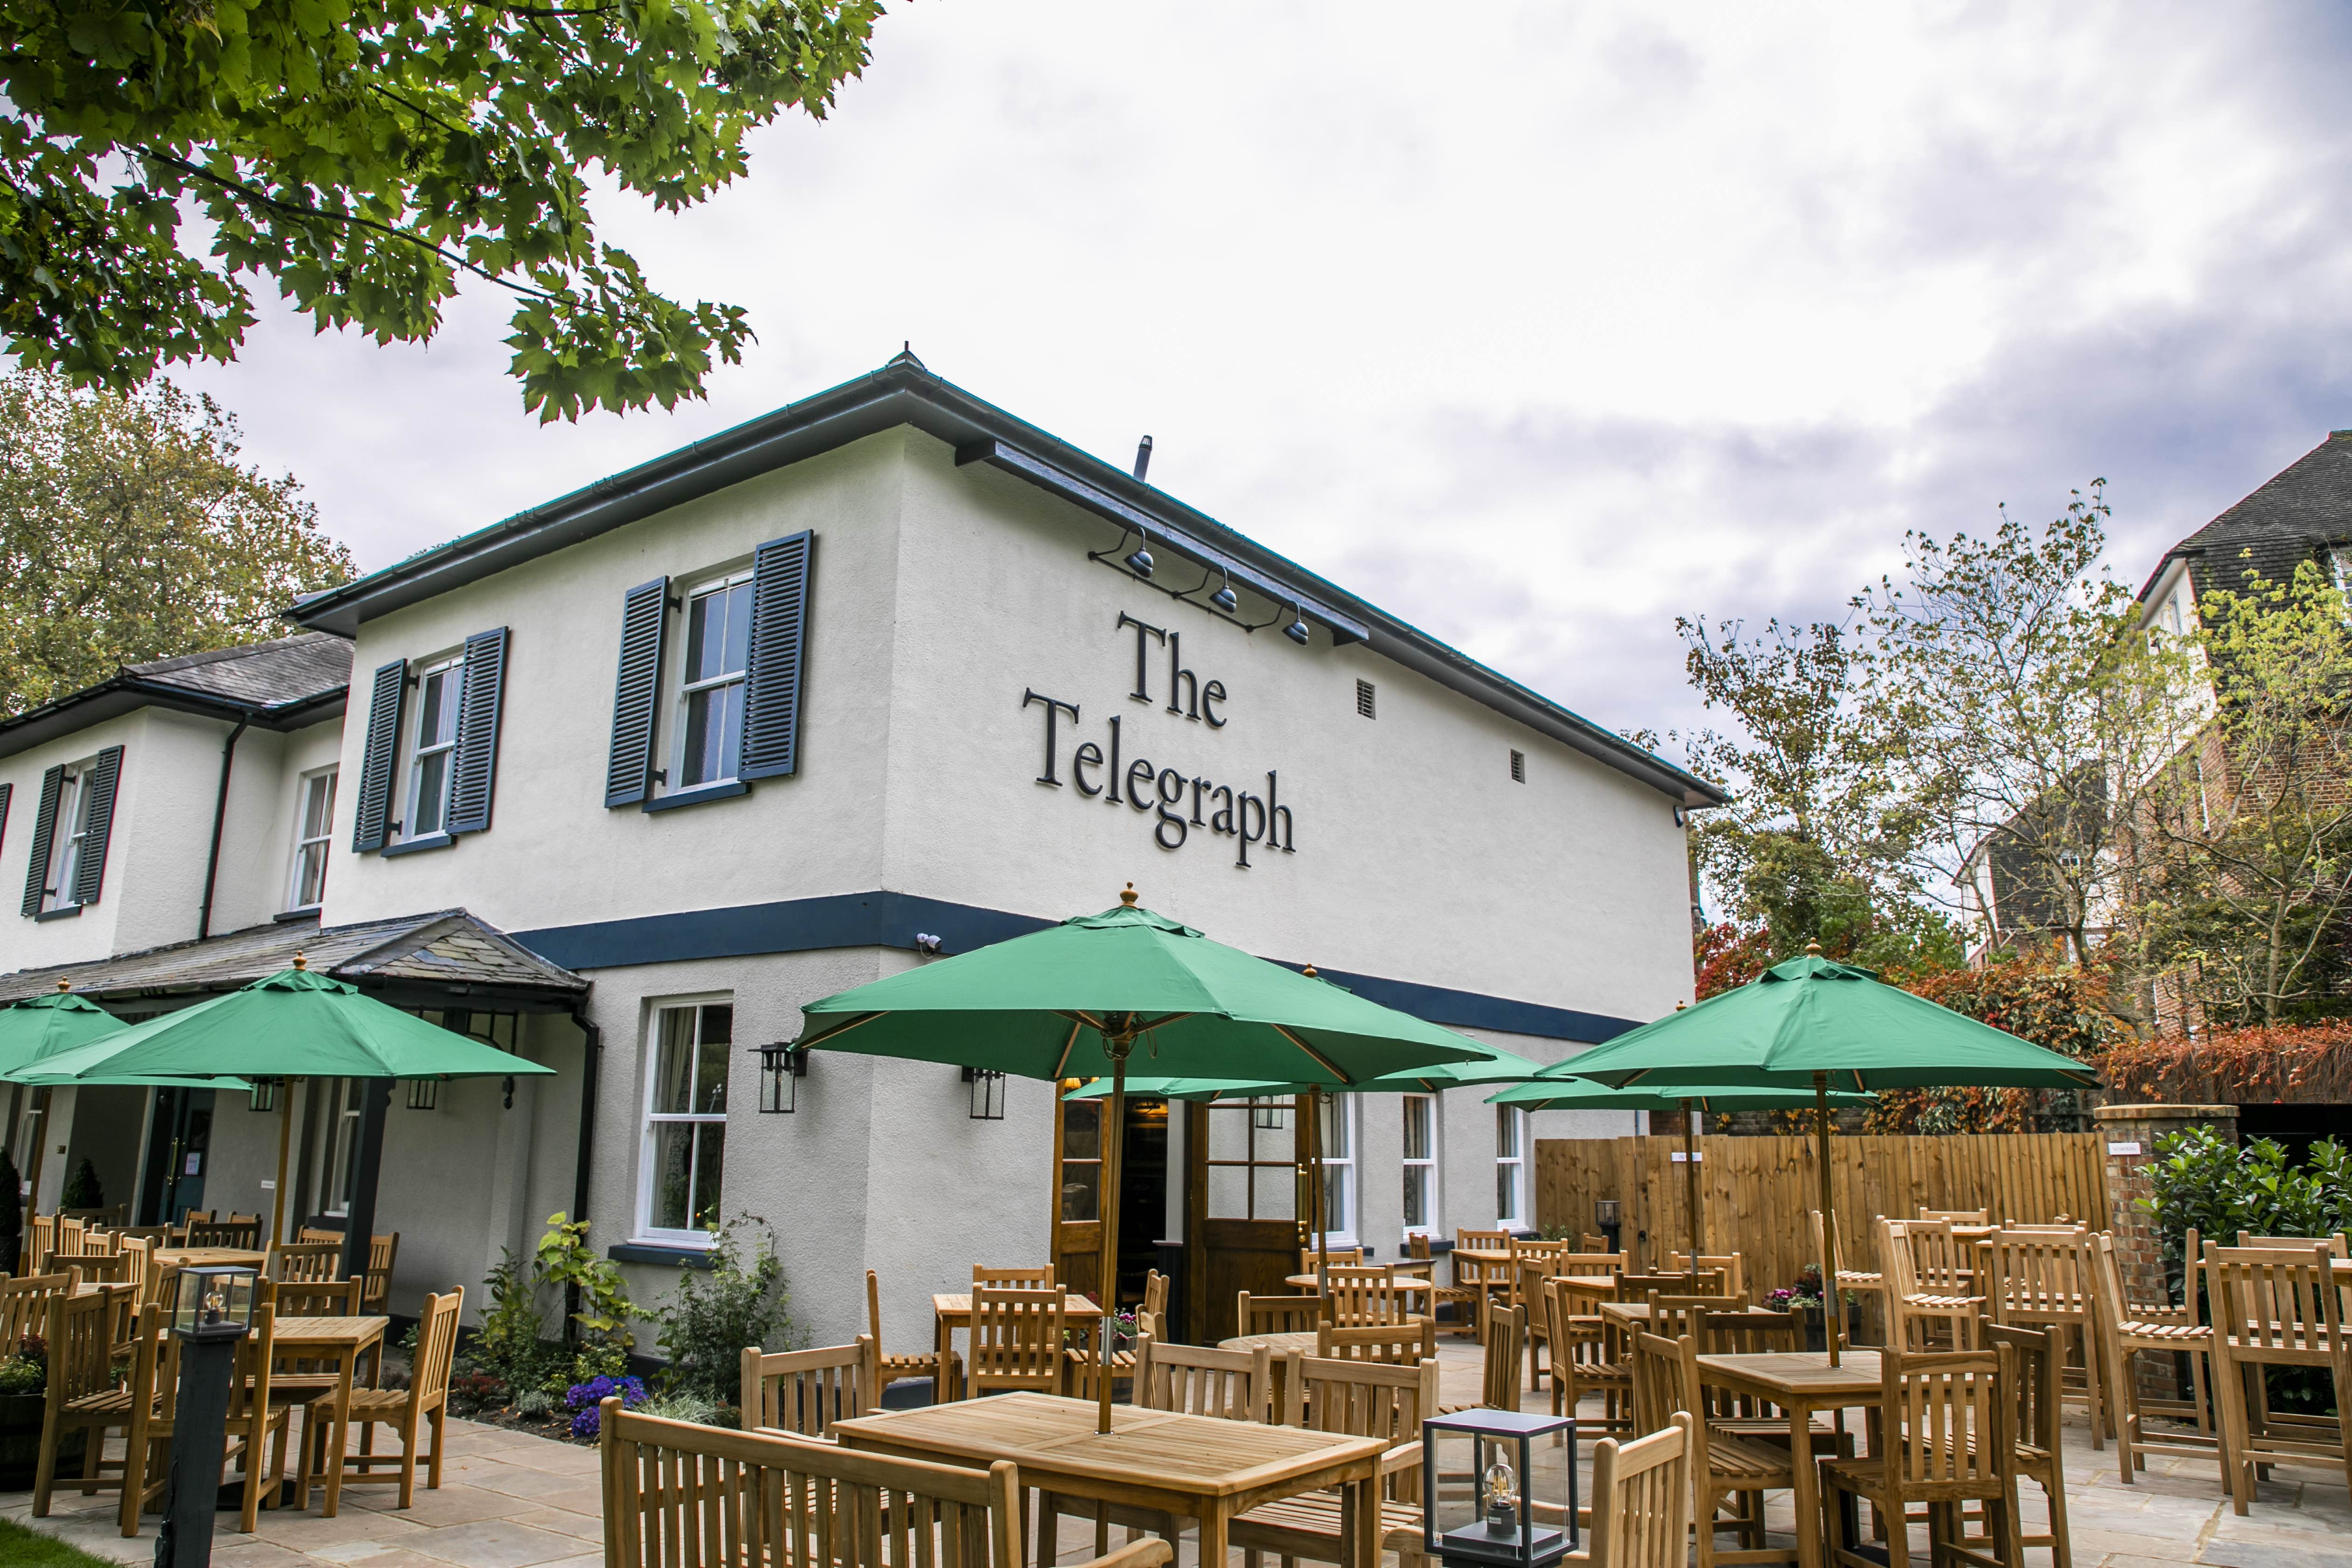 Image of The Telegraph Pub Putney London exterior